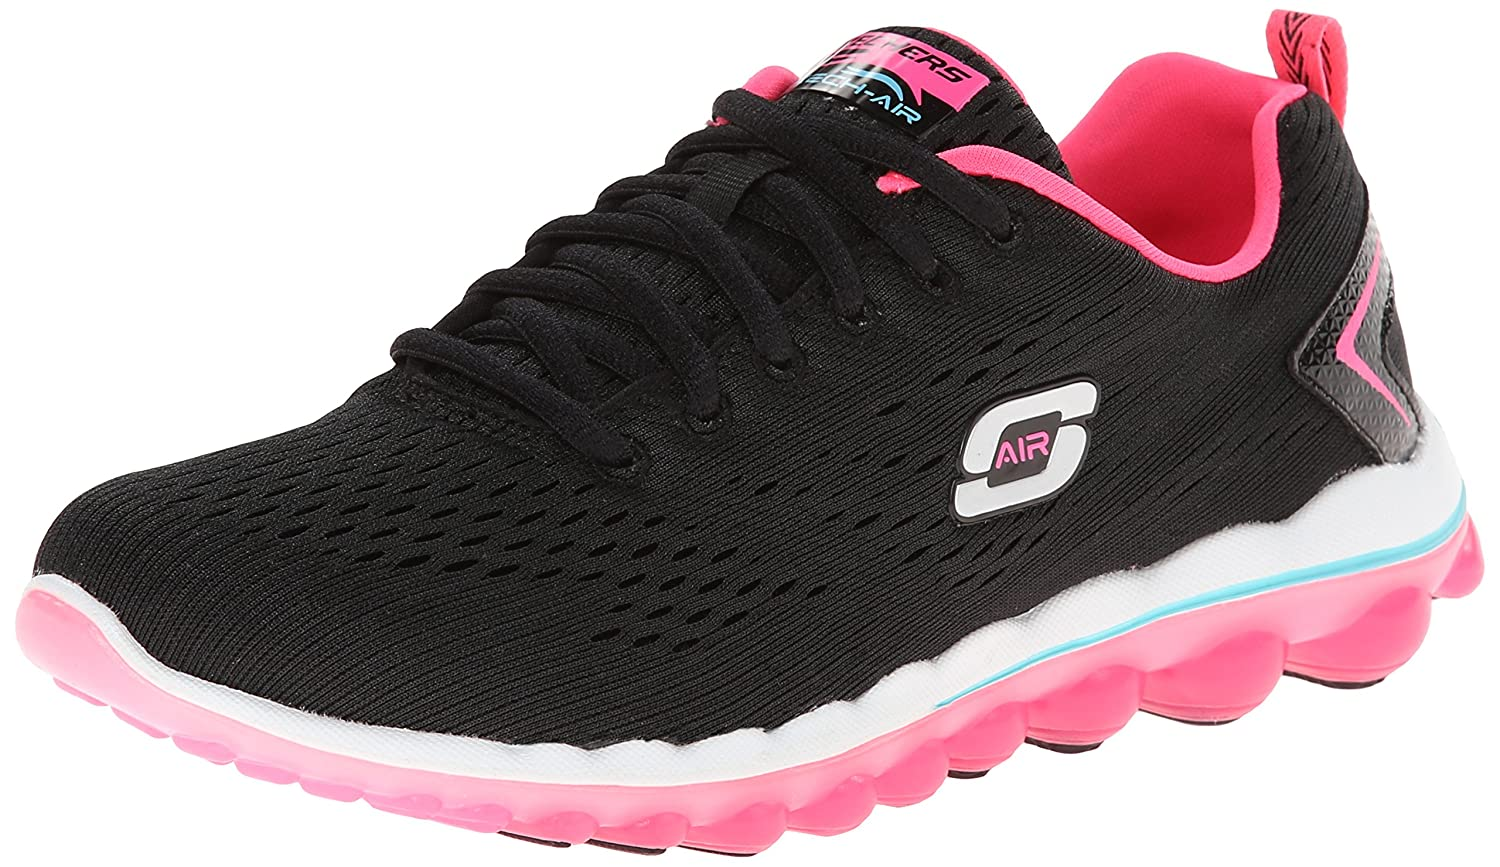 【初売り】 Skechers Women's Skech-Air 2.0 2.0 - Discoveries Ankle-High Pink womens_us Fabric Running Shoe B00MXVI8IA Black Mesh/Hot Pink Trim 6.5 womens_us 6.5 womens_us|Black Mesh/Hot Pink Trim, 小町ジュエリー:e177378b --- a0267596.xsph.ru